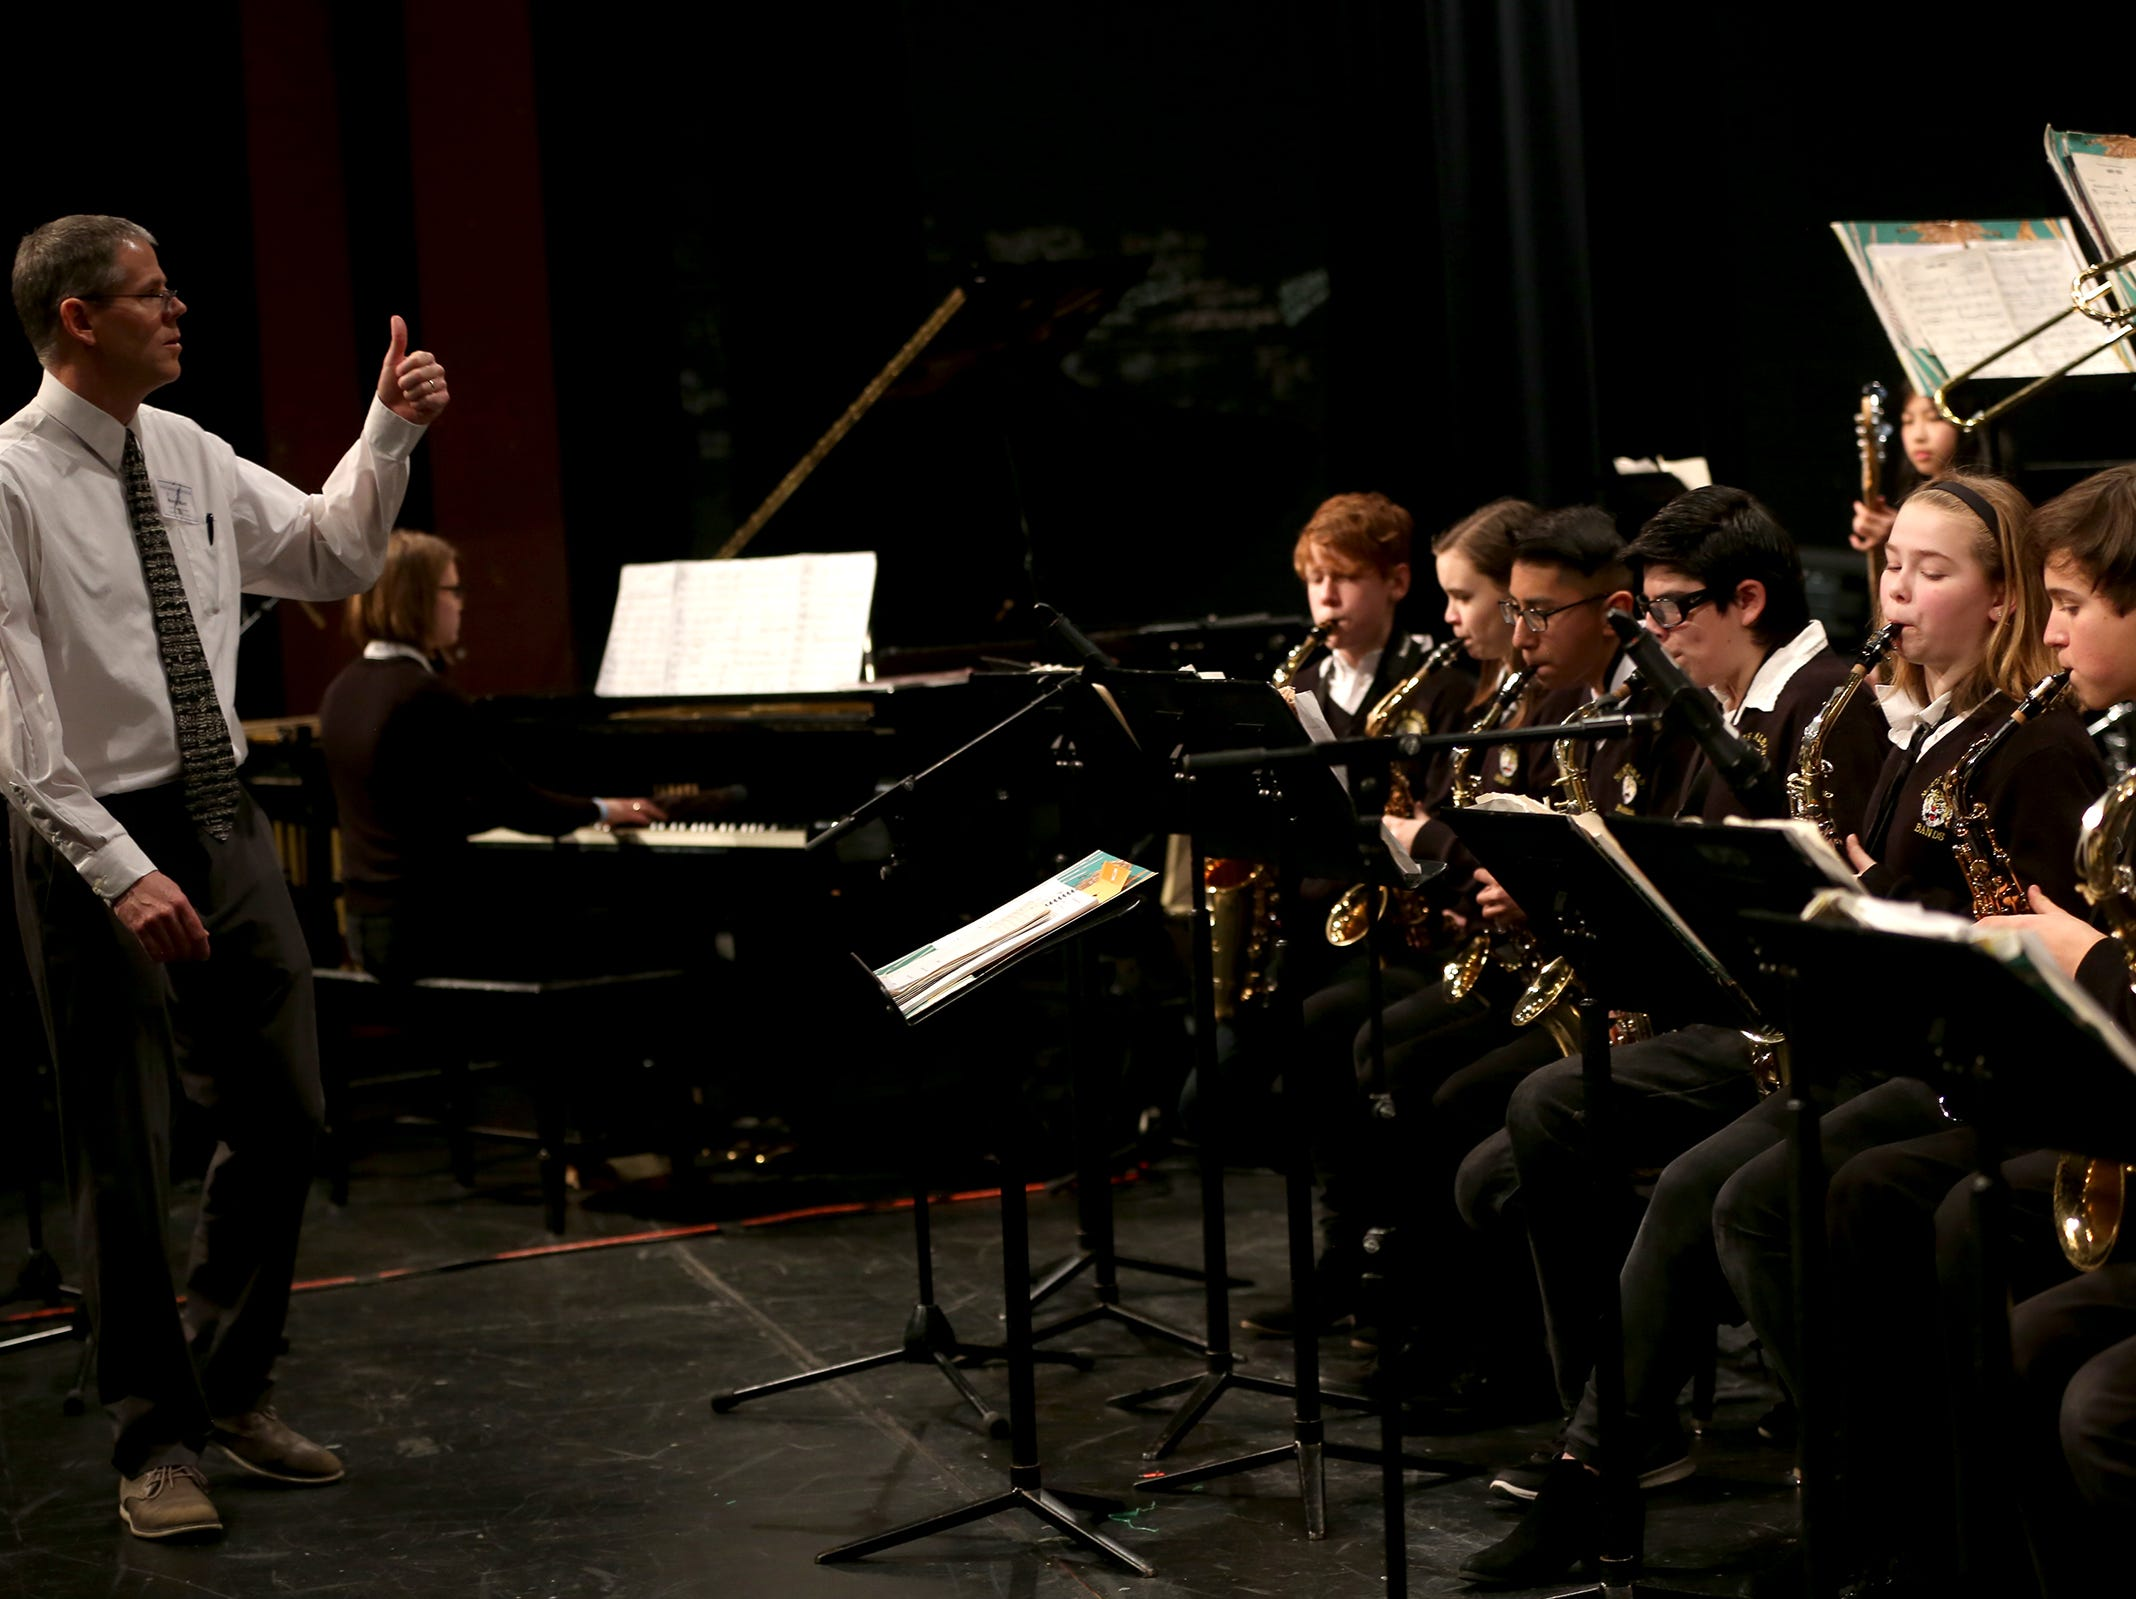 North Albany High School's jazz band, under the direction of Andy Nelson, perform at the annual West Salem Jazz Festival at West Salem High School on Saturday, Feb. 9, 2019.